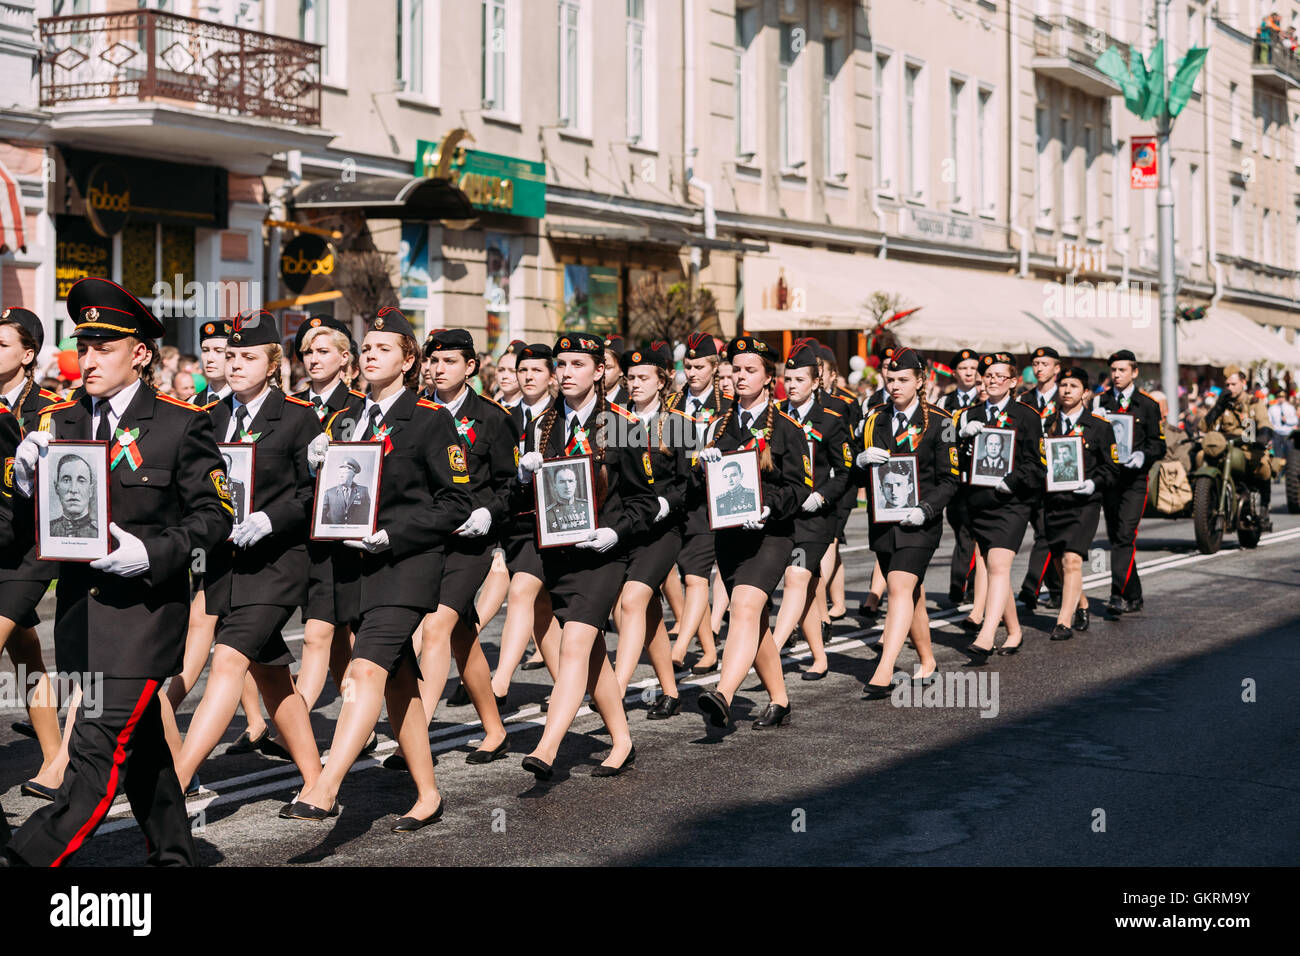 Gala Formation In March Of Immortal Regiment Action, Parade Procession Of Young People From Gomel State Cadet School - Stock Image